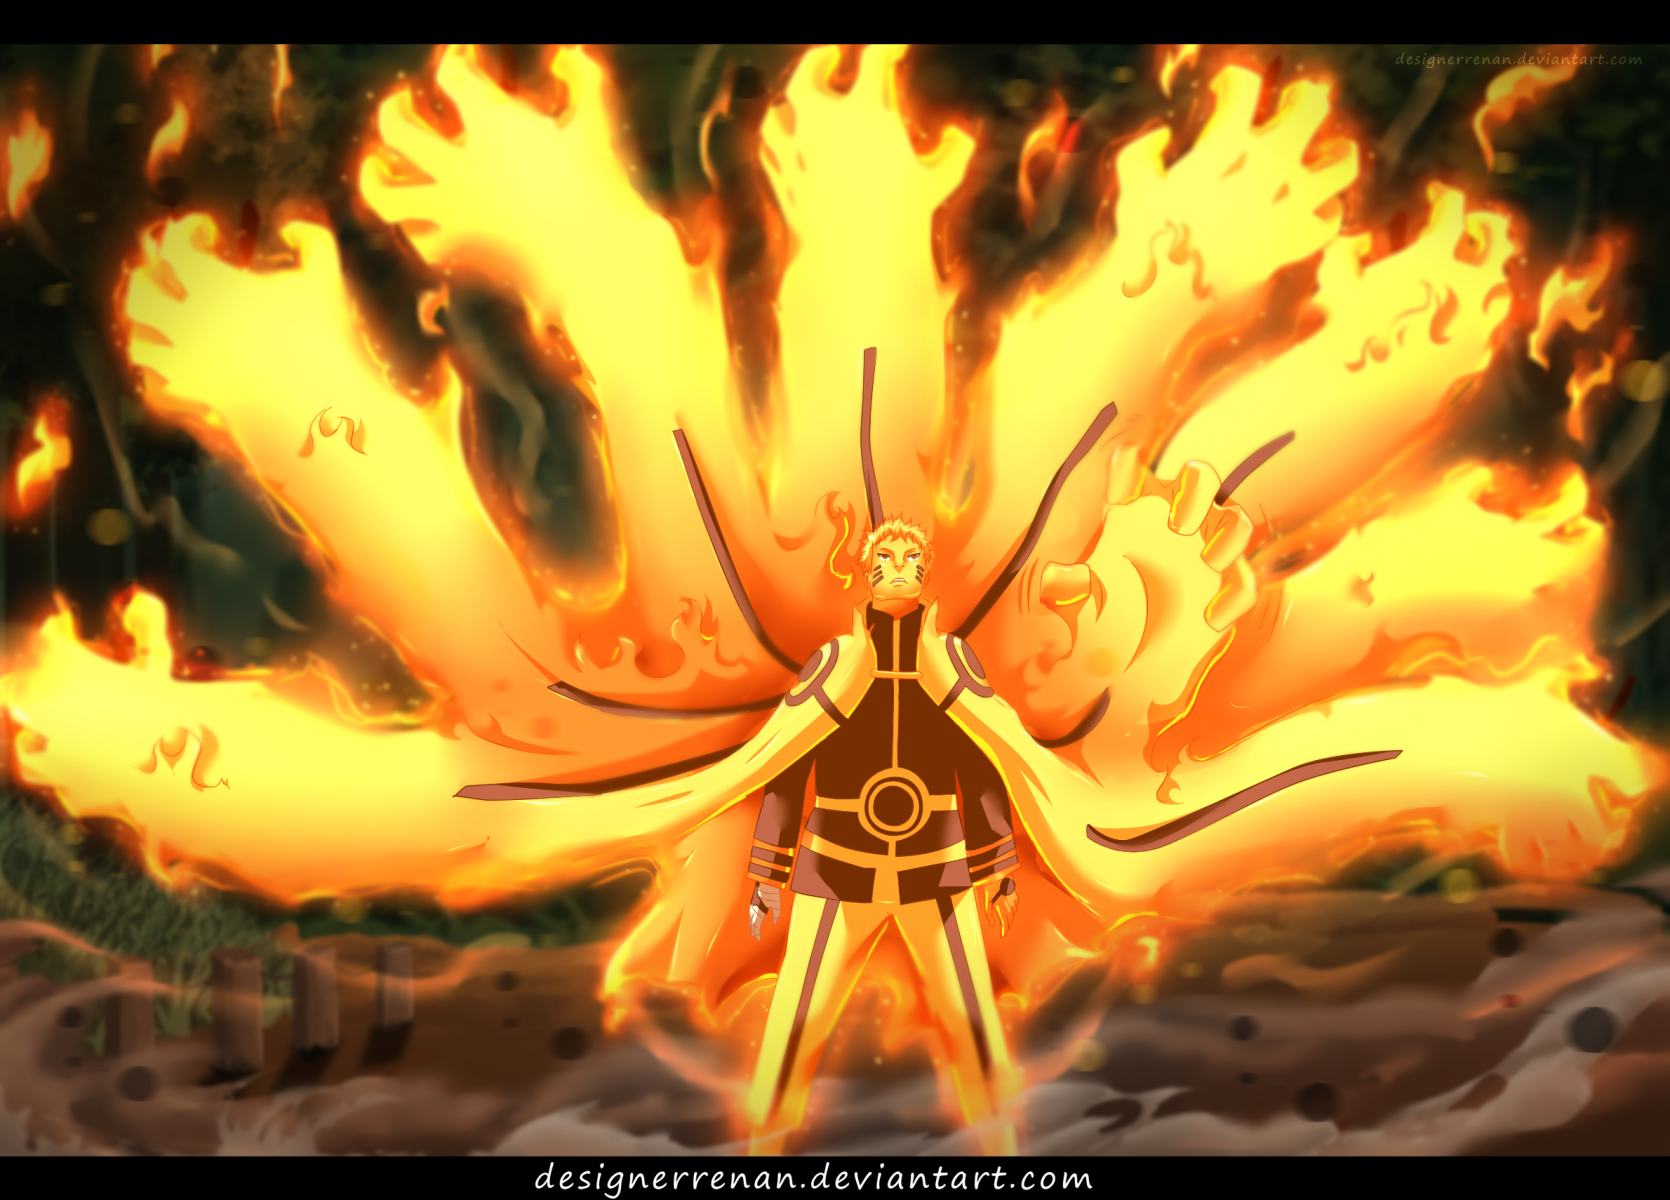 Naruto Anime Hd Wallpaper Collection 1080p Background Hd Images Yl Computing